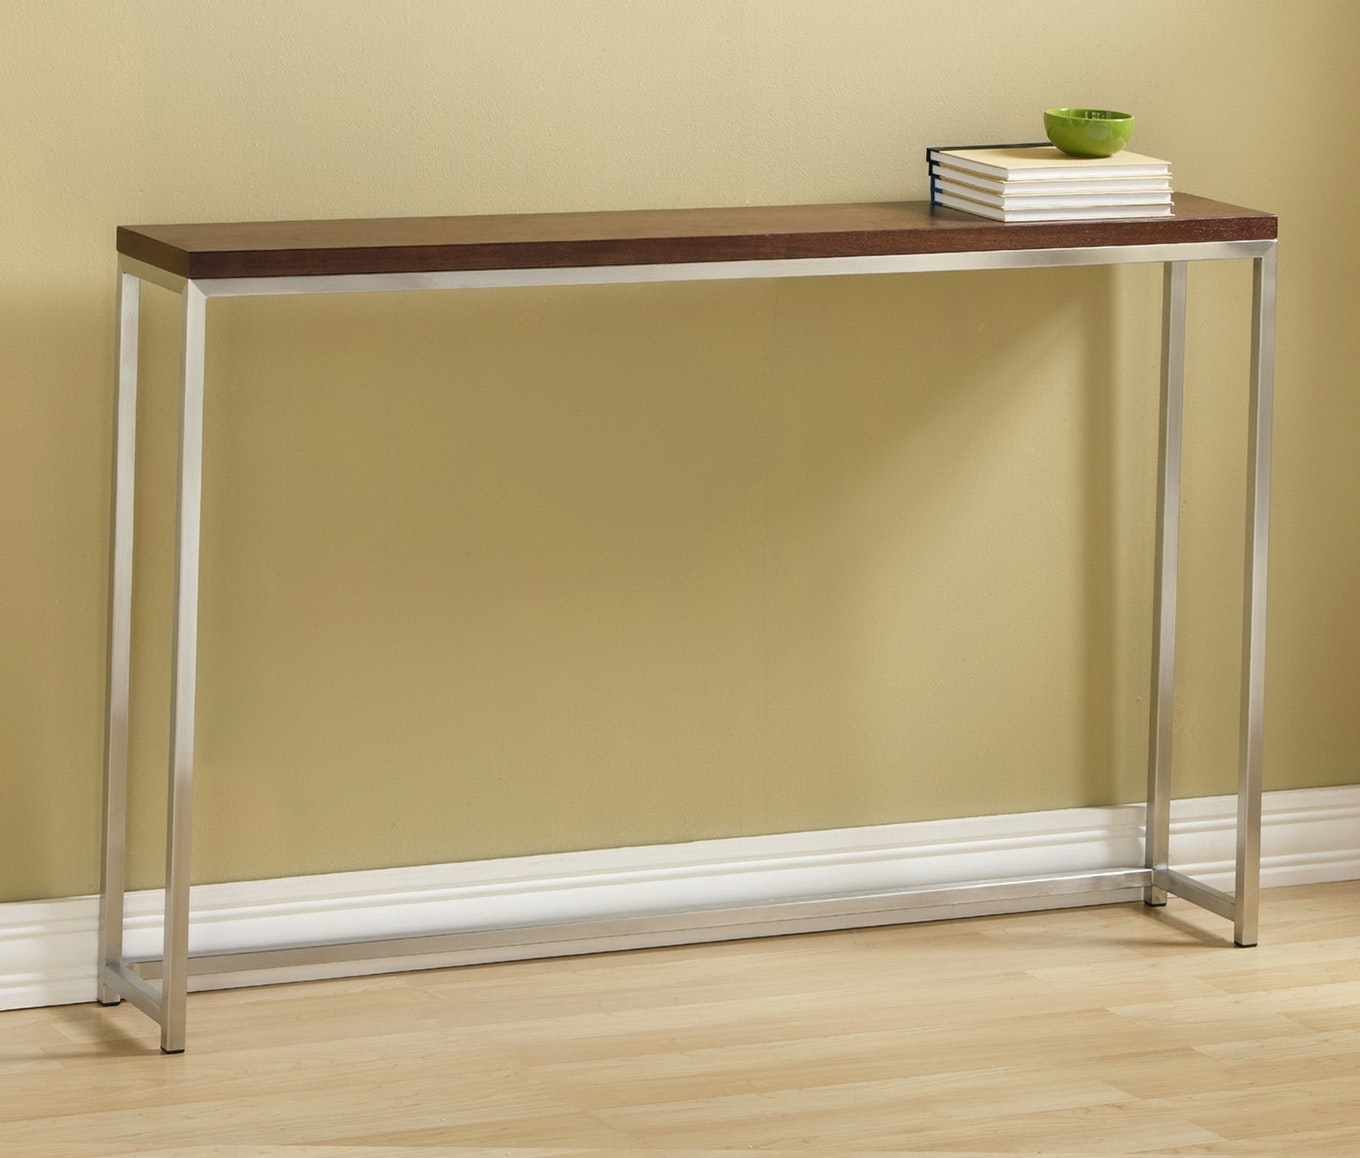 Long Slim Sofa Table | Tehranmix Decoration Intended For Slim Sofa Tables (View 6 of 20)